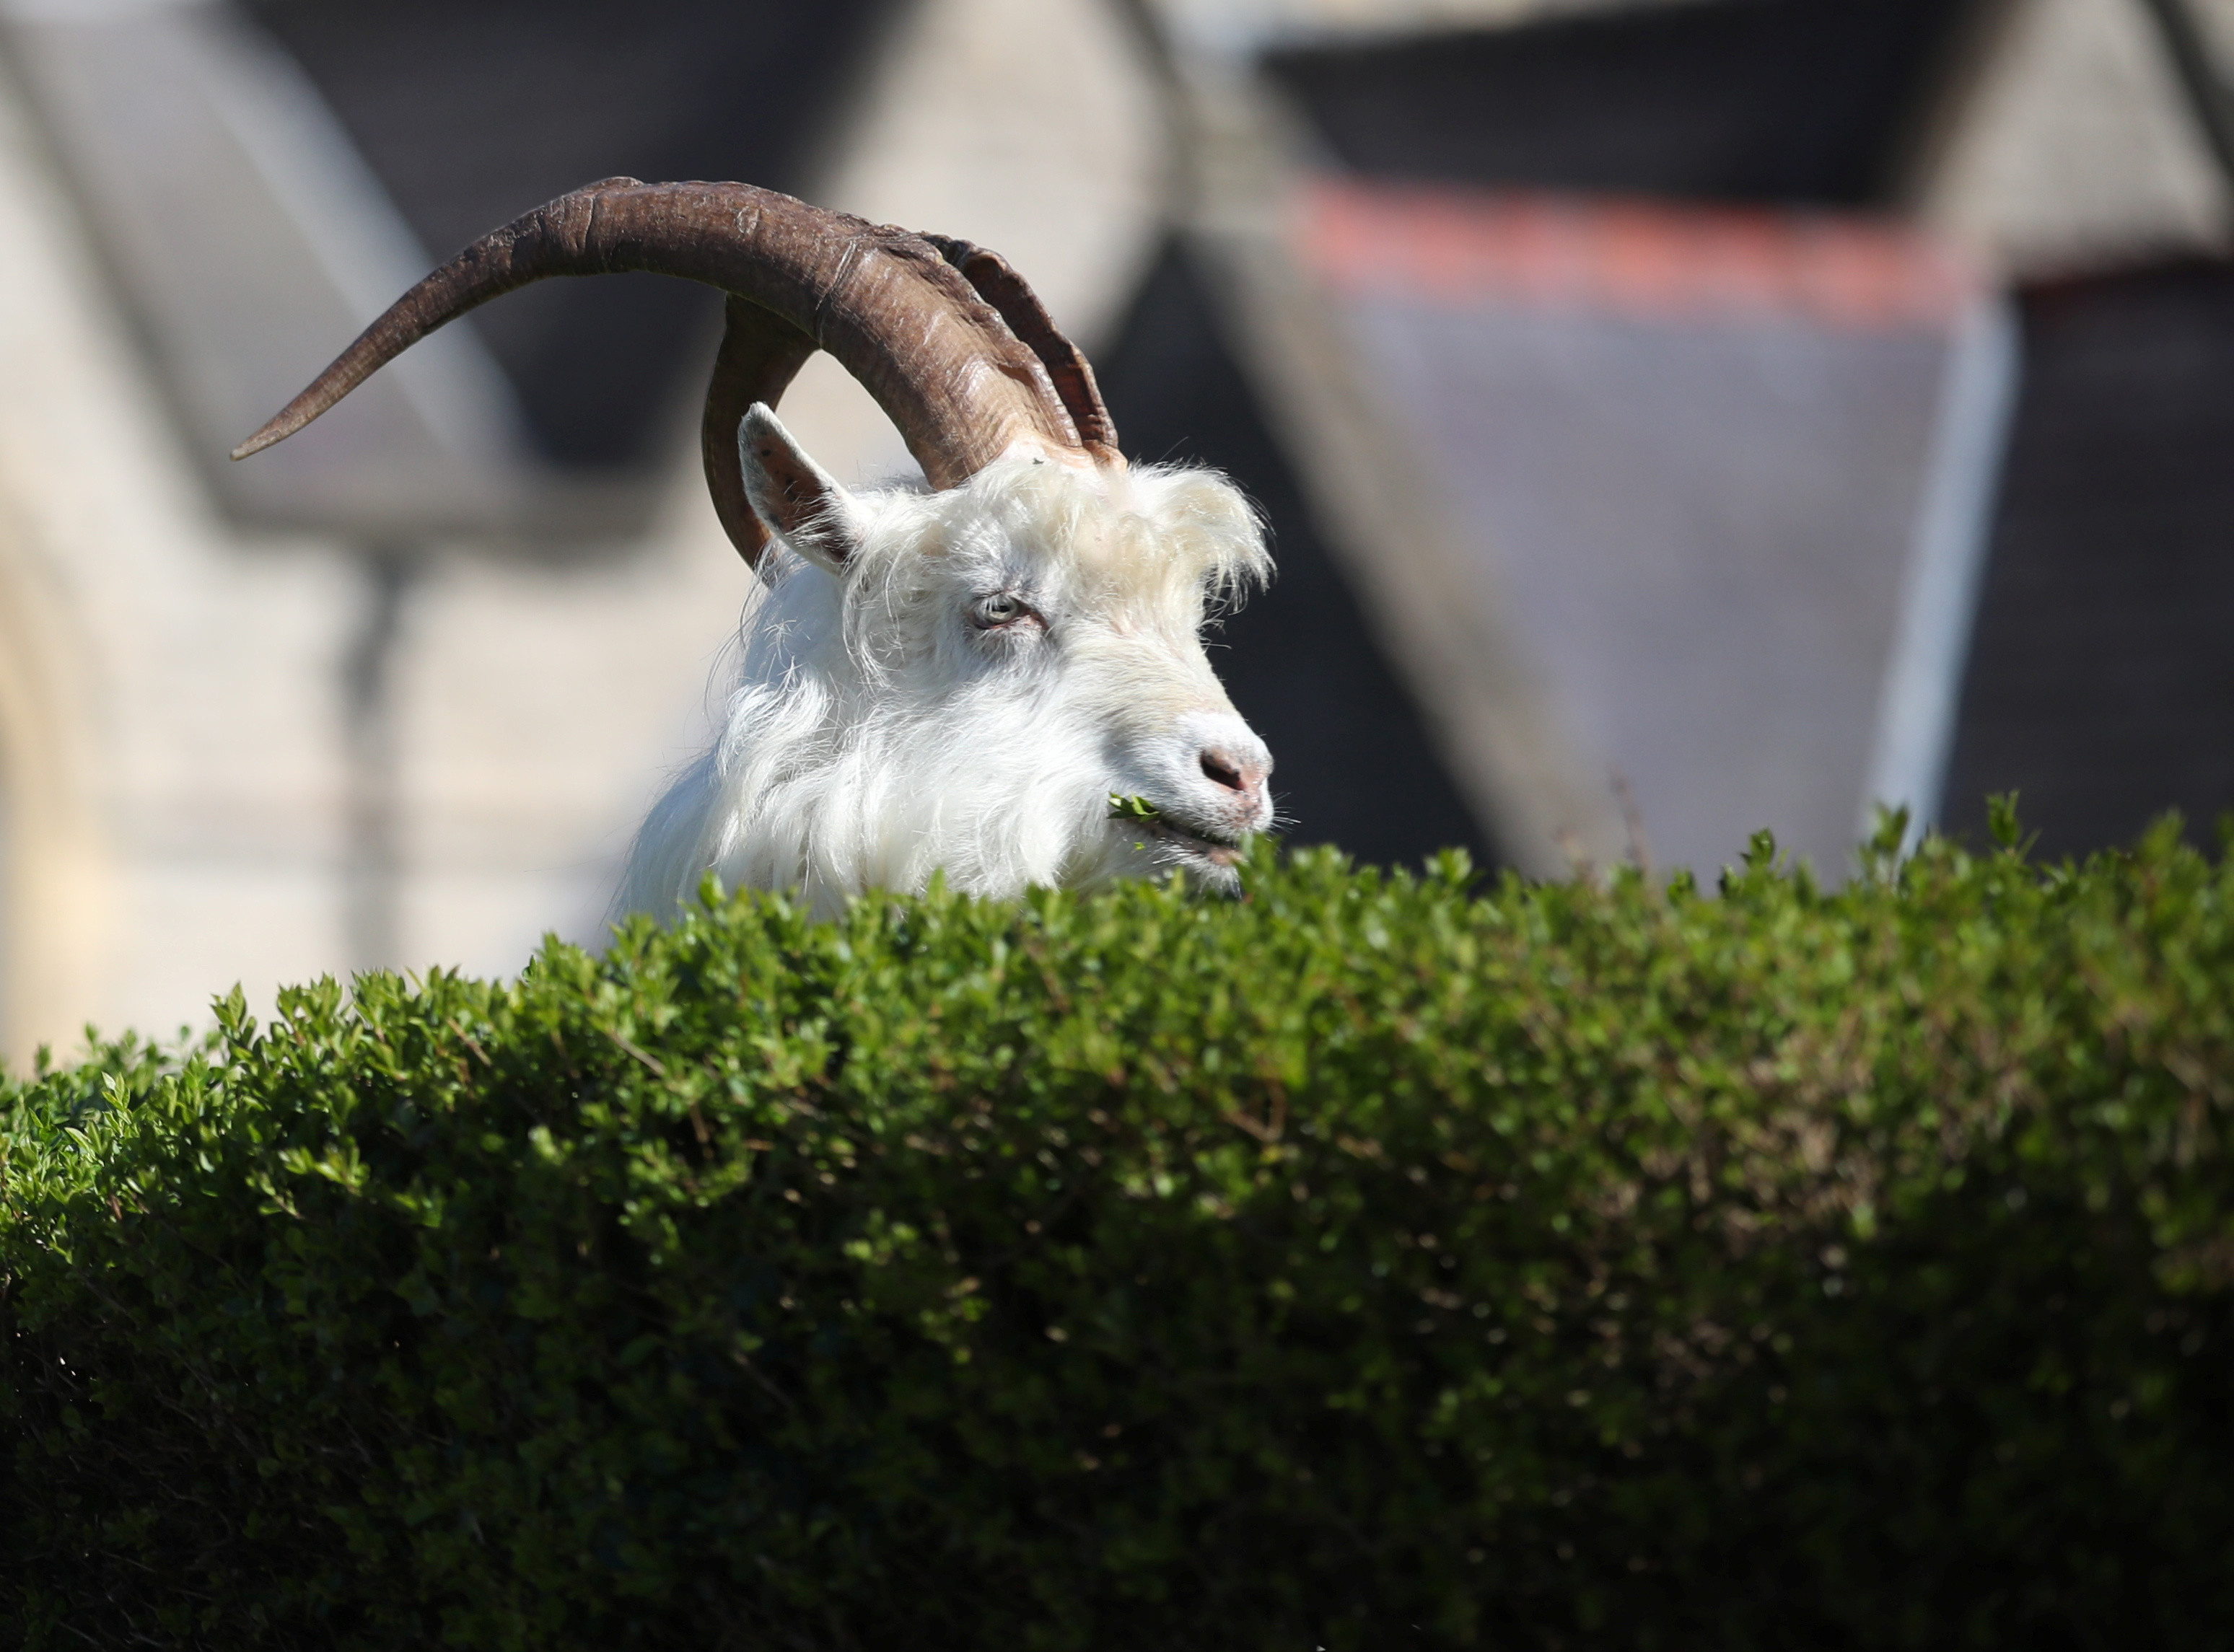 A goat is seen in a city in Llandudno, Wales, Britain, during the spread of COVID-19 on March 31, 2020.